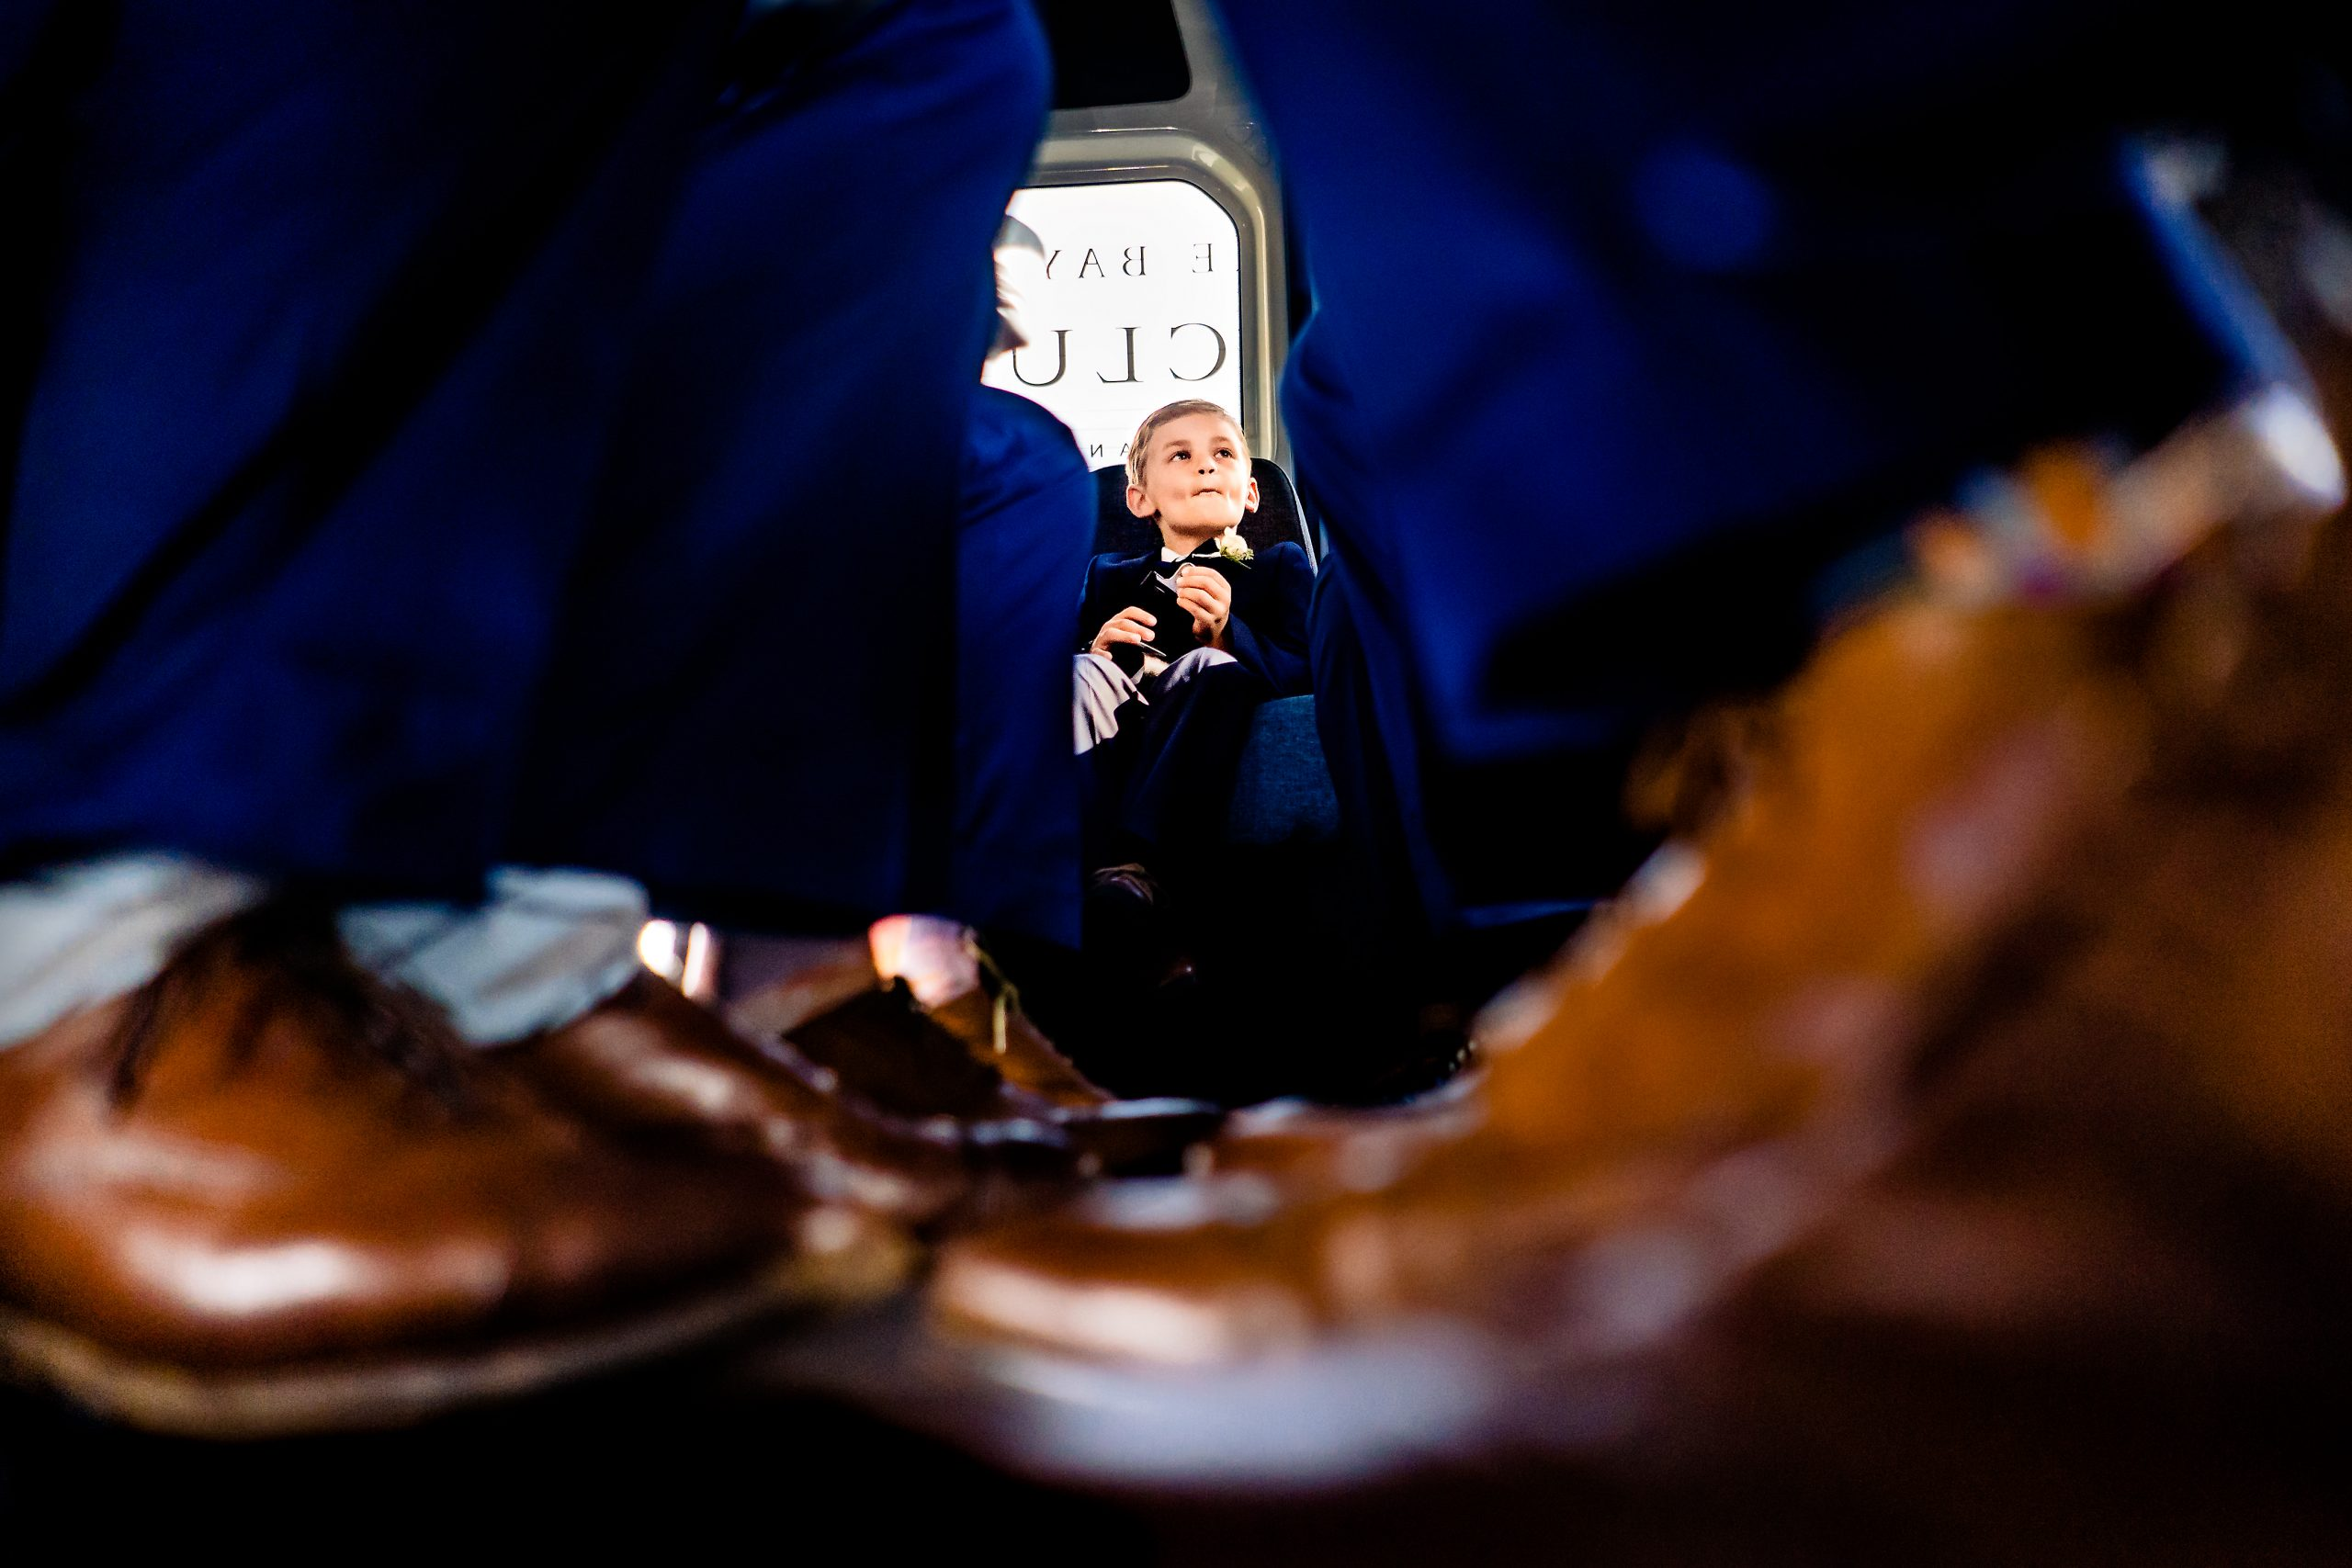 Through a column of the dress shoes of the groomsmen a young boy can be seen in formal attire